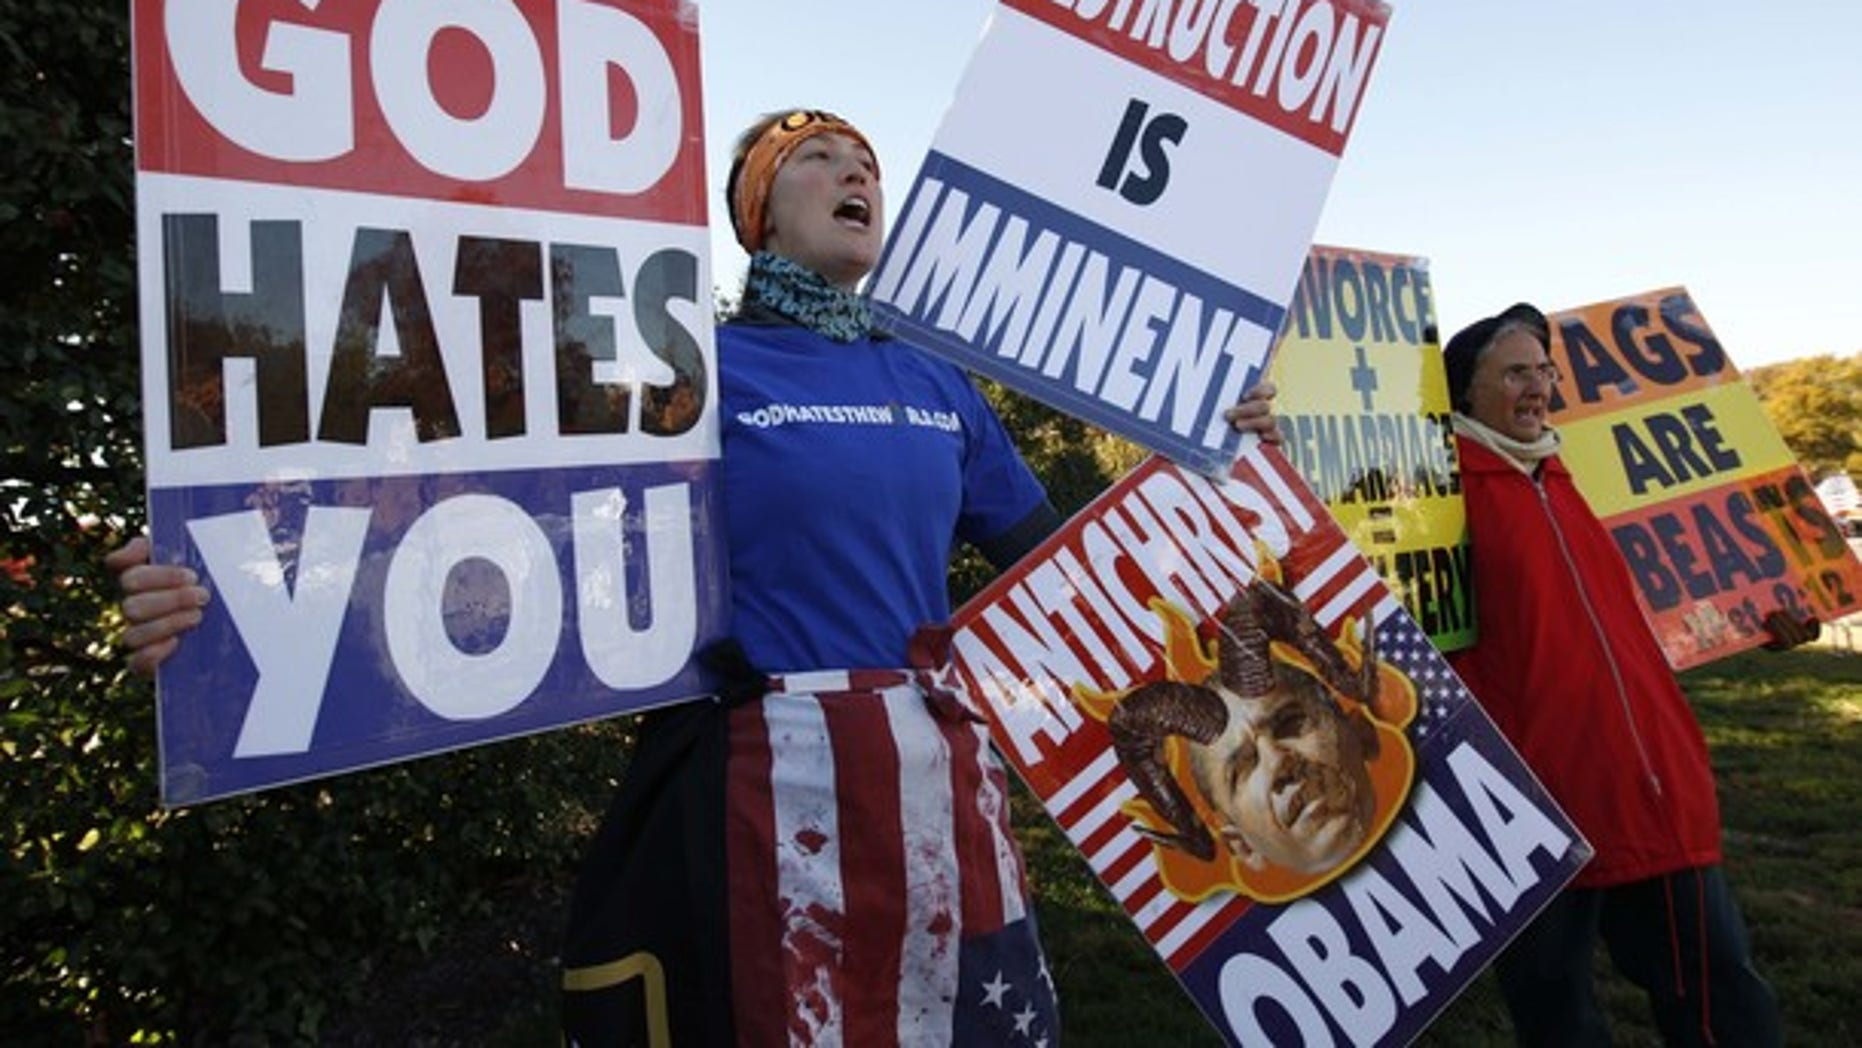 Nov. 11, 2010: Members of the Westboro Baptist Church hold anti-gay signs at Arlington National Cemetery in Virginia on Veterans Day.